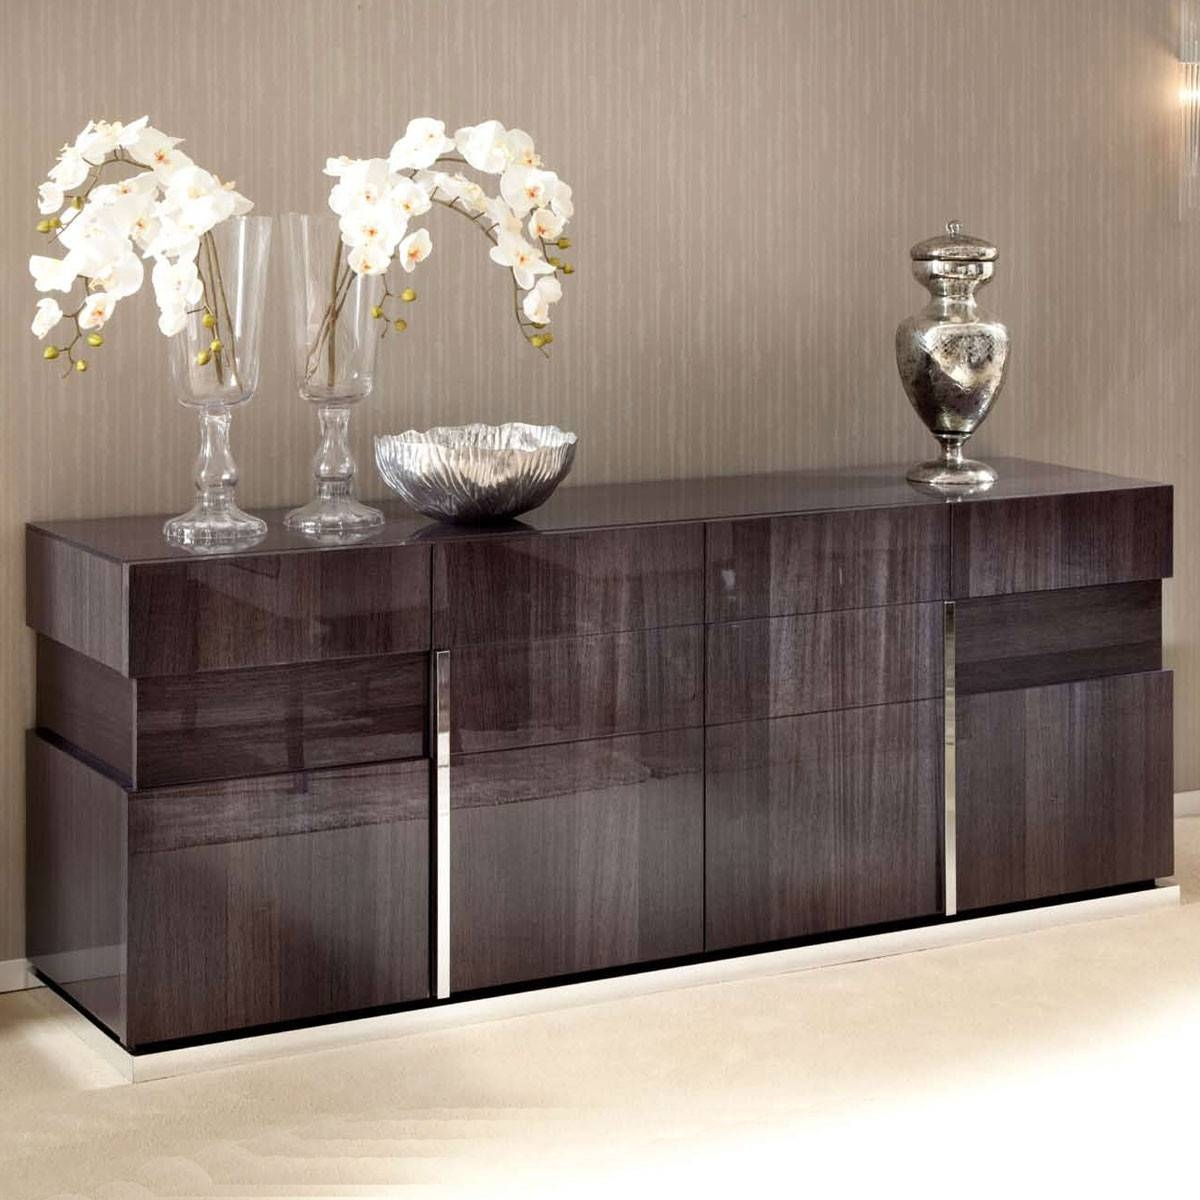 High Gloss 4 Door Sideboard With Current Gloss Sideboards (#5 of 15)